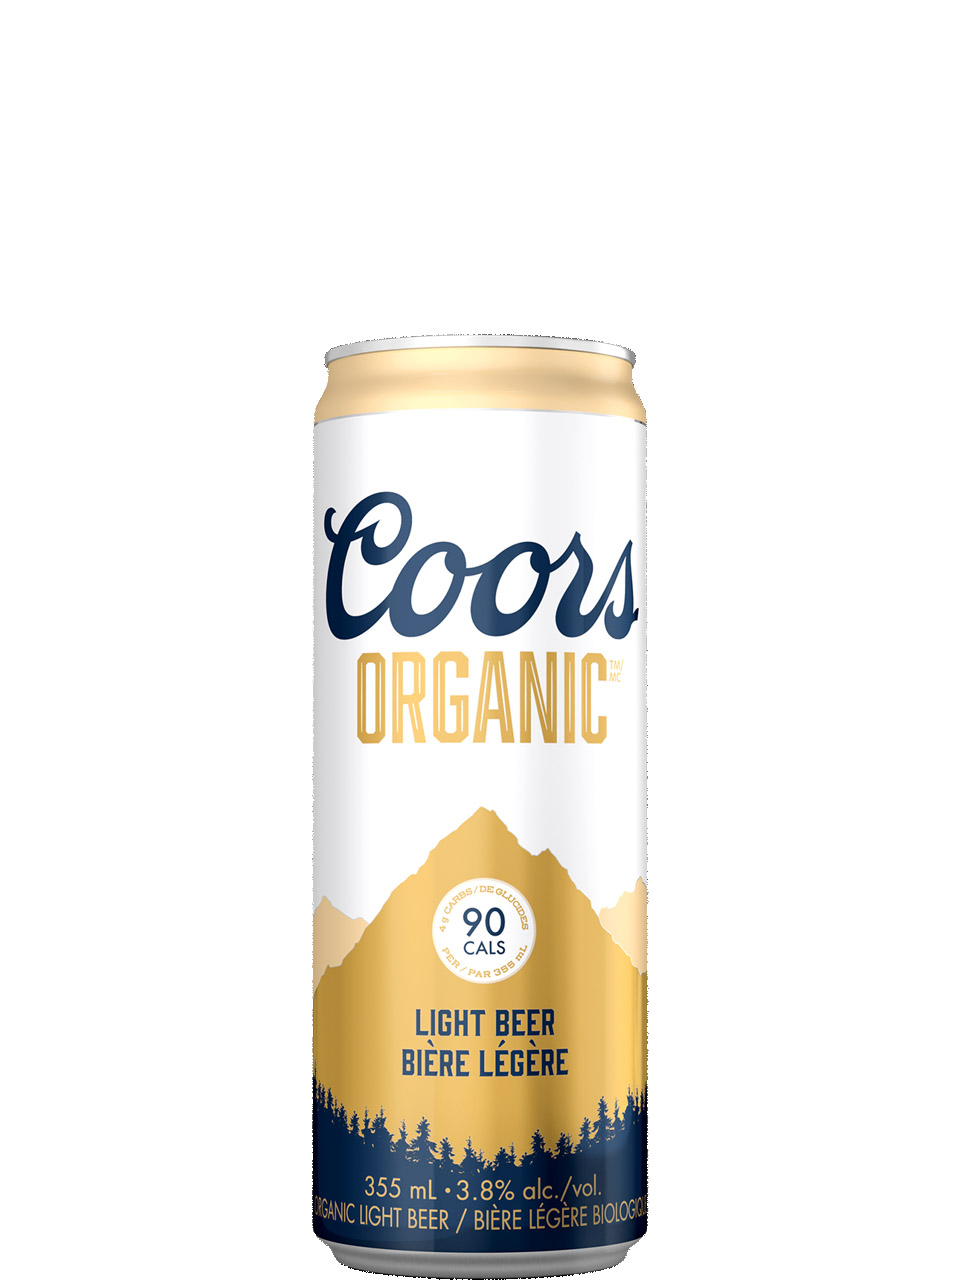 Coors Organic 6 Pack Cans